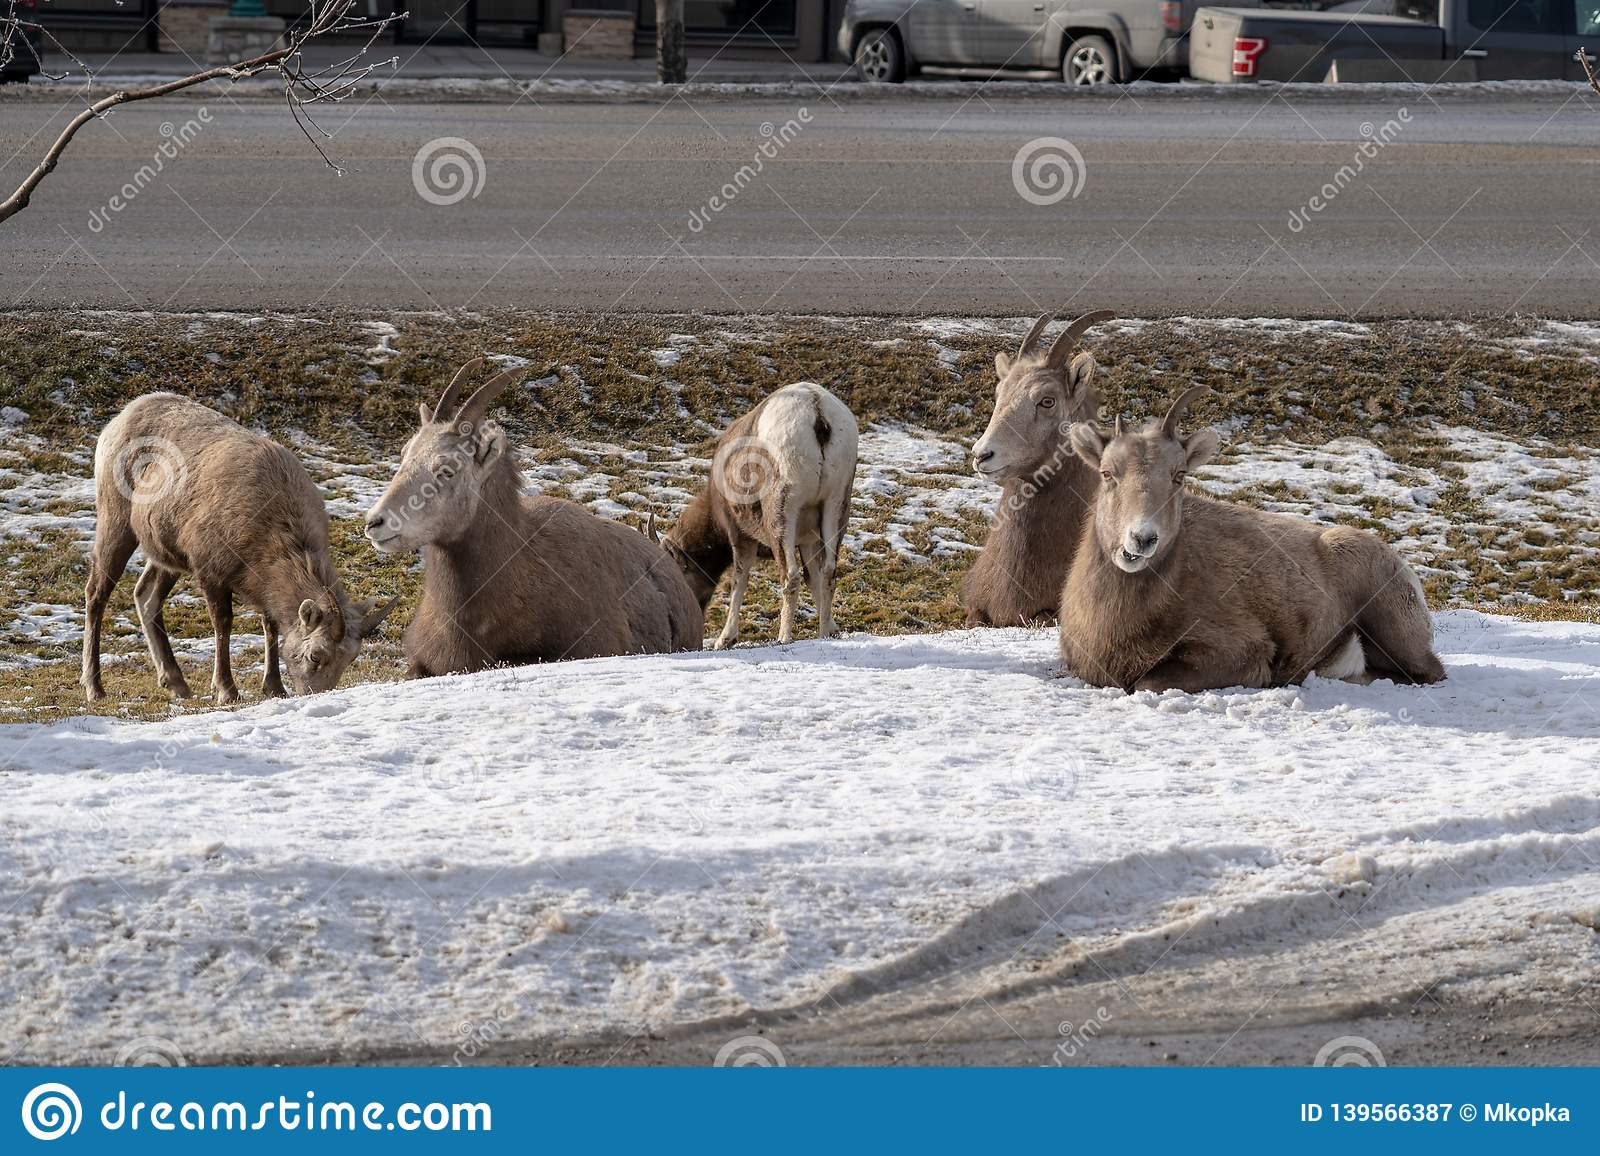 A herd of female ewe bighorn sheep gather, graze and relax in a roadside ditch during winter in Radium Hot Springs British